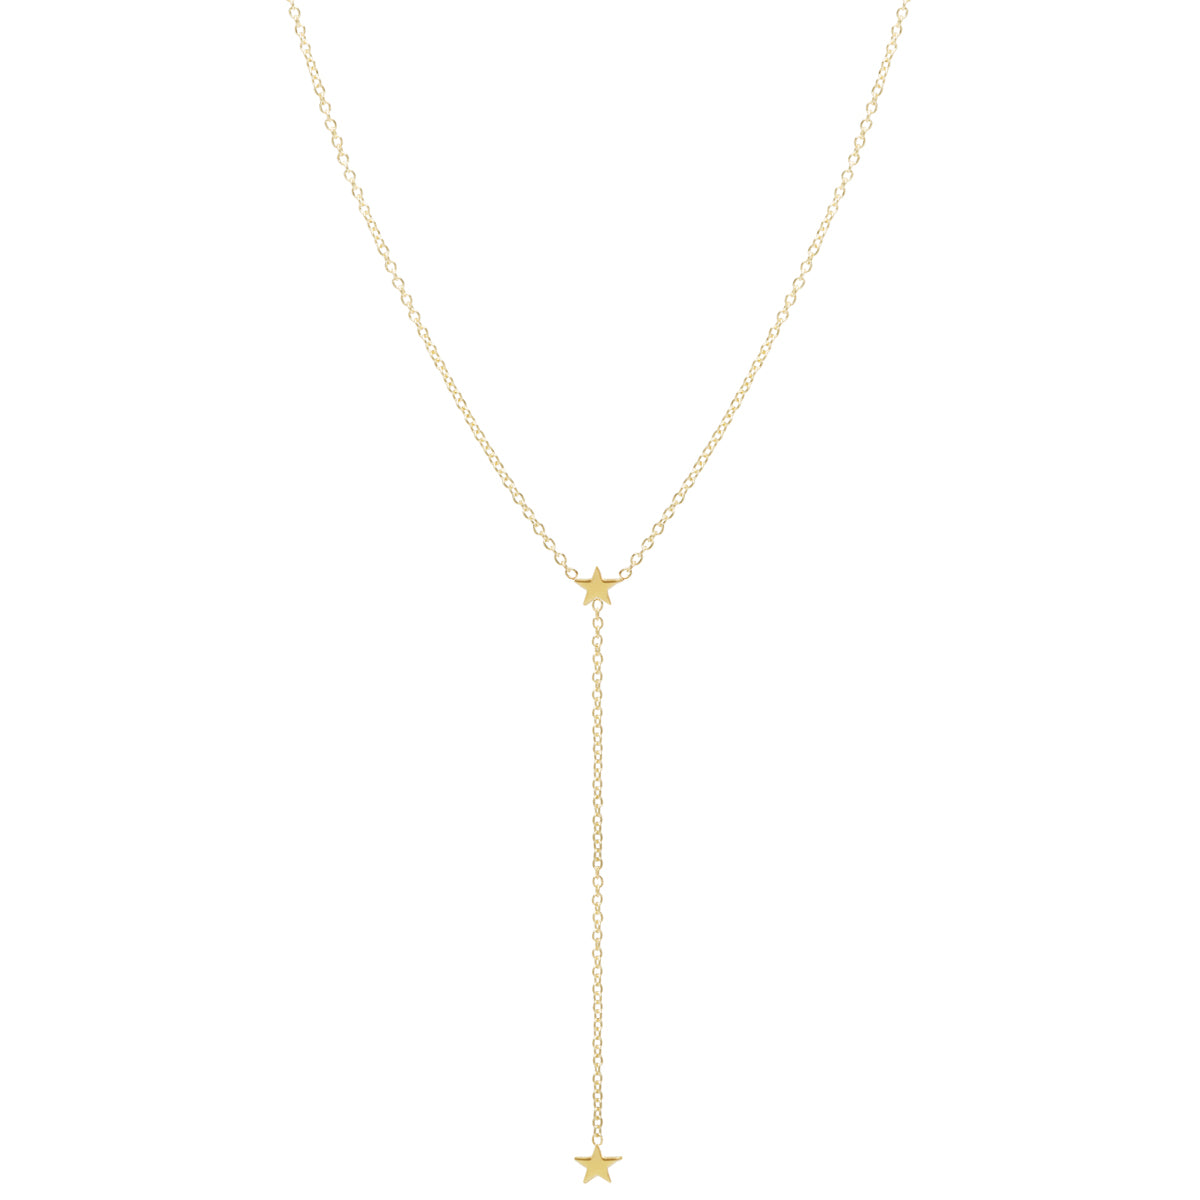 Zoë Chicco 14kt Yellow Gold Itty Bitty 2 Star Lariat Necklace